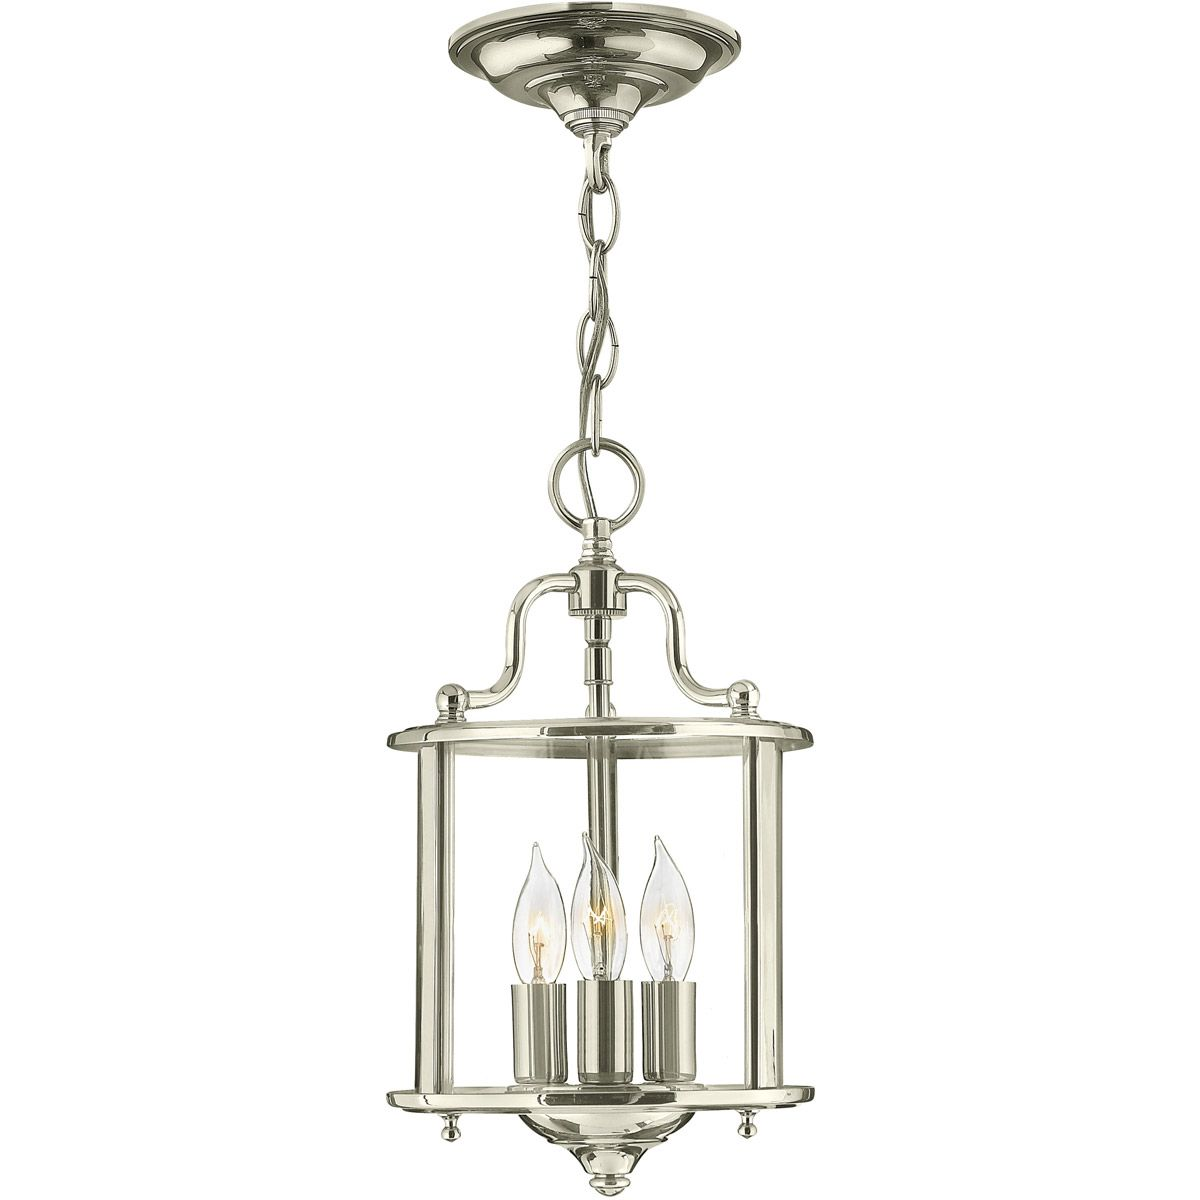 Hinkley 3470pn Gentry 3 Light 8 Inch Polished Nickel Foyer Light Ceiling Light Small Pendant Lights Pendant Light Ceiling Pendant